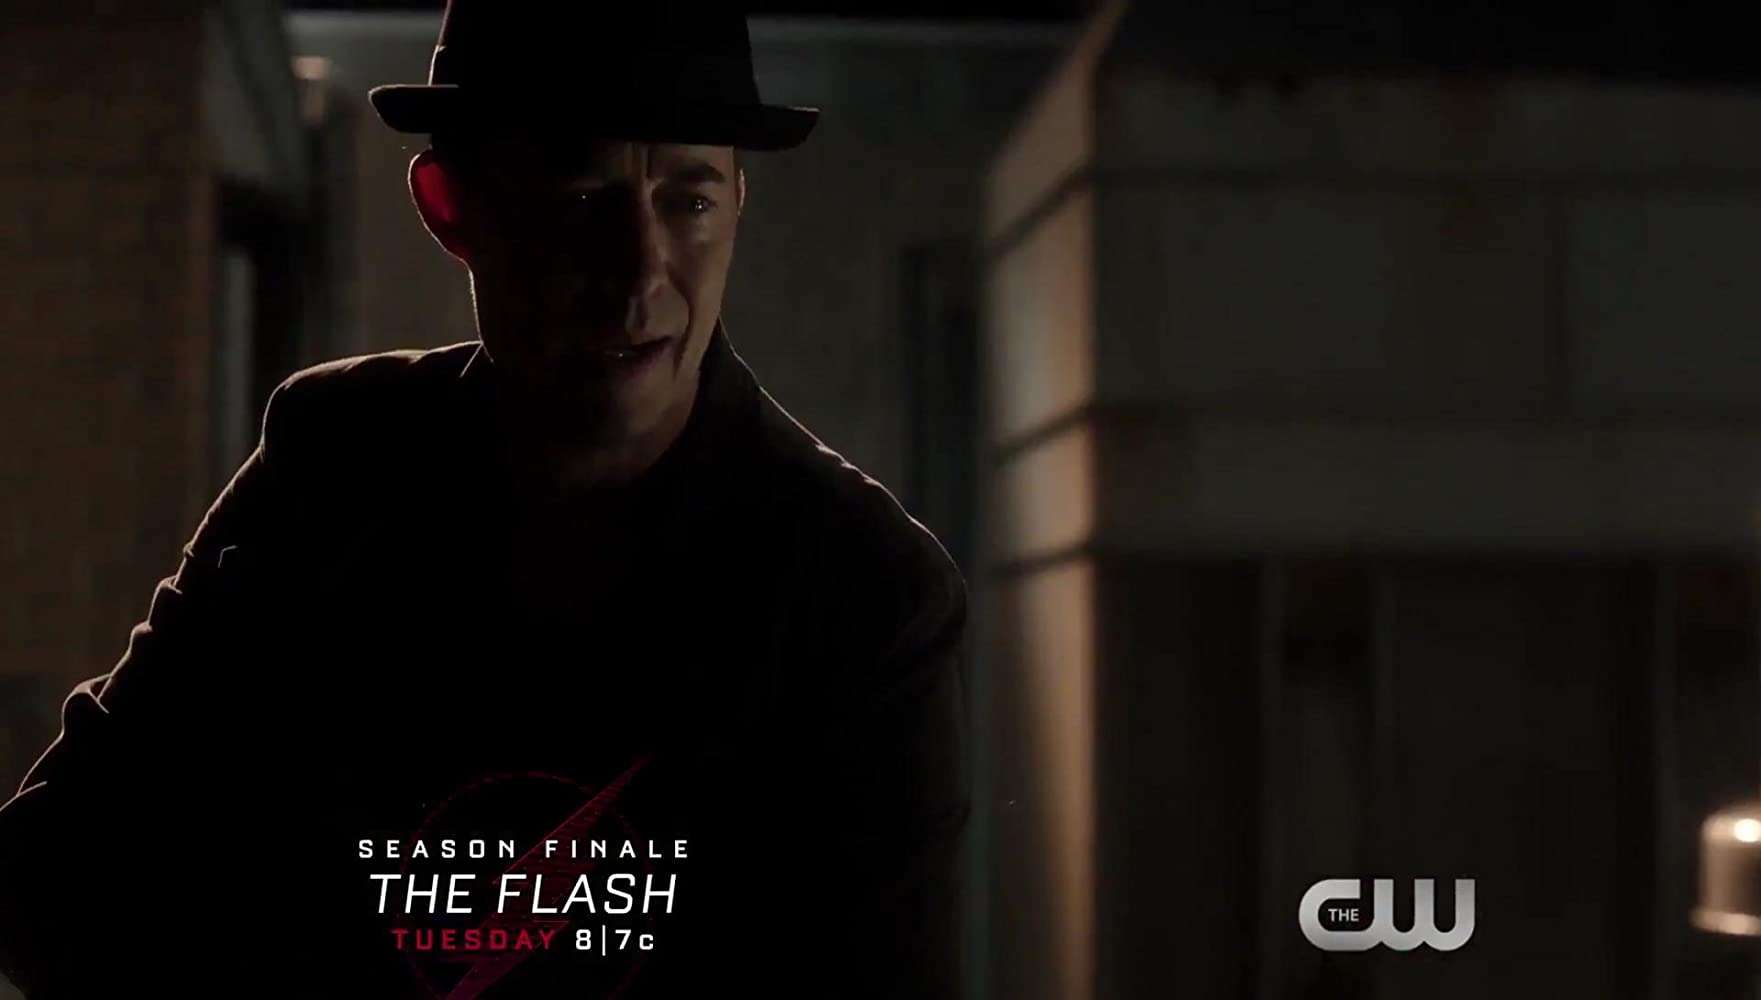 The Flash S04E01 – The Flash Reborn, serial online subtitrat în Română